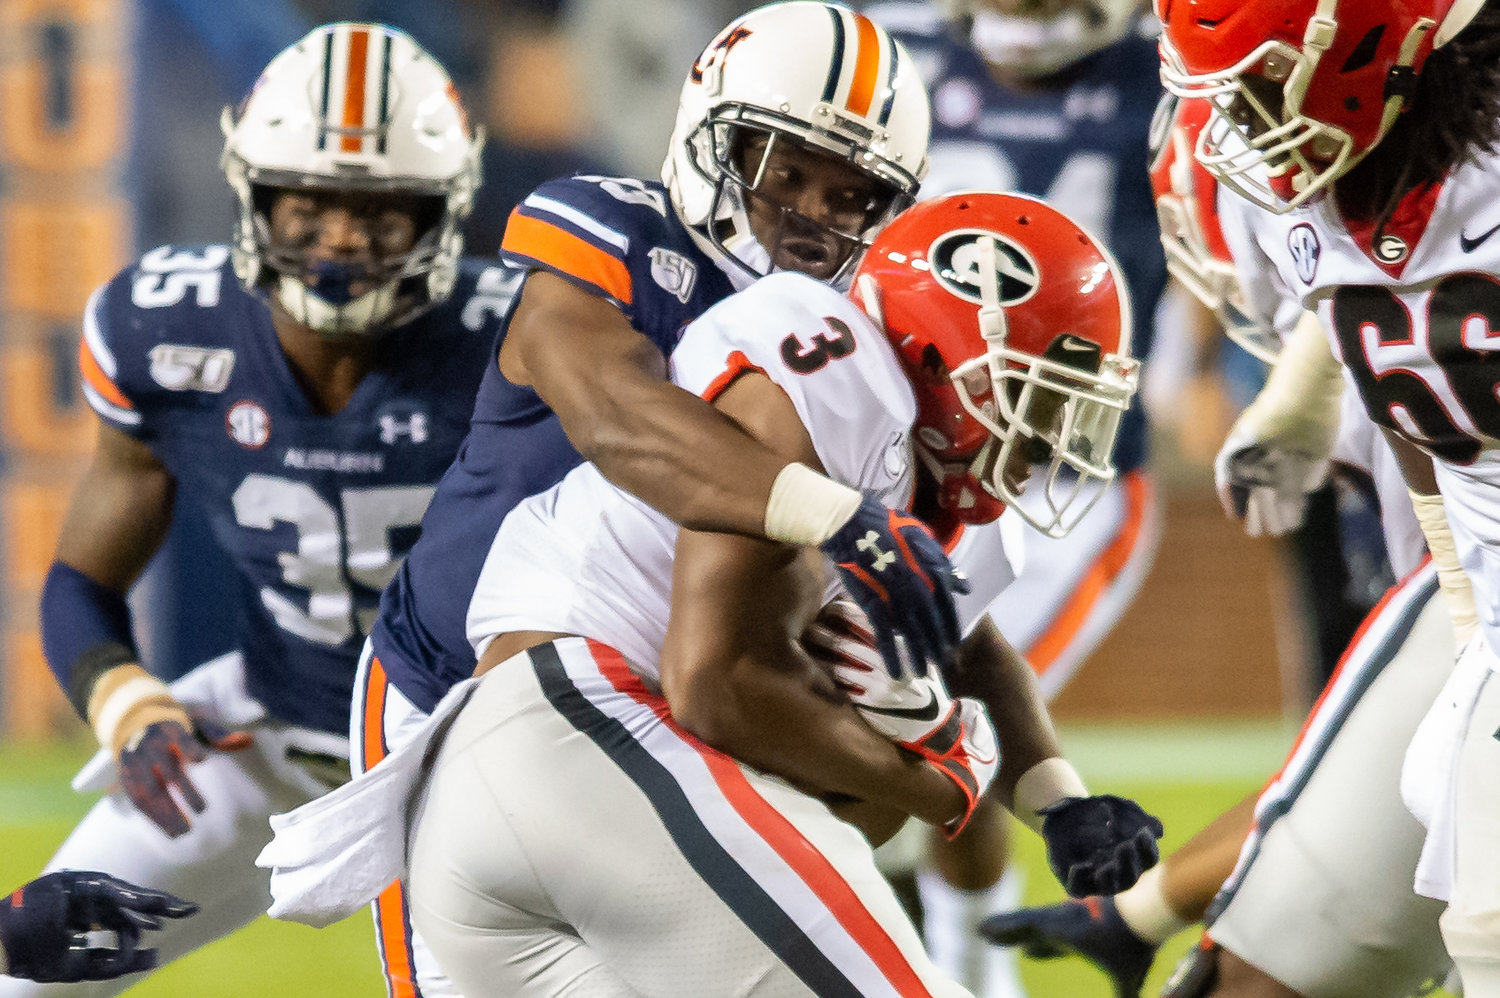 Auburn Tigers defensive back Javaris Davis (13) wraps up Georgia Bulldogs running back Zamir White (3) during the second half of Saturday's game, at Jordan-Hare Stadium in Auburn,, AL. Daily Mountain Eagle -  Jeff Johnsey